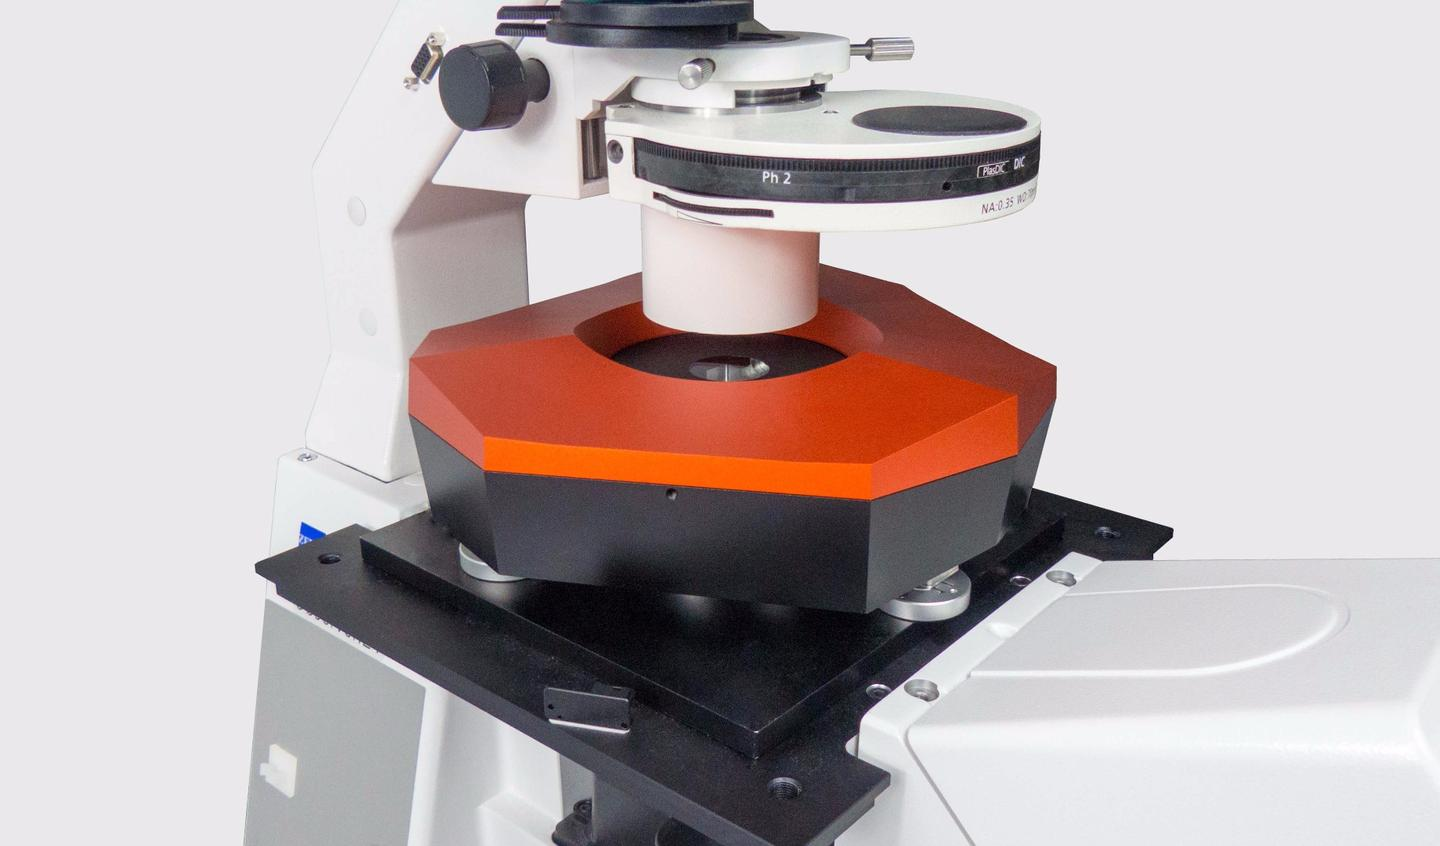 The cell-weighing scale, mounted on a microscope